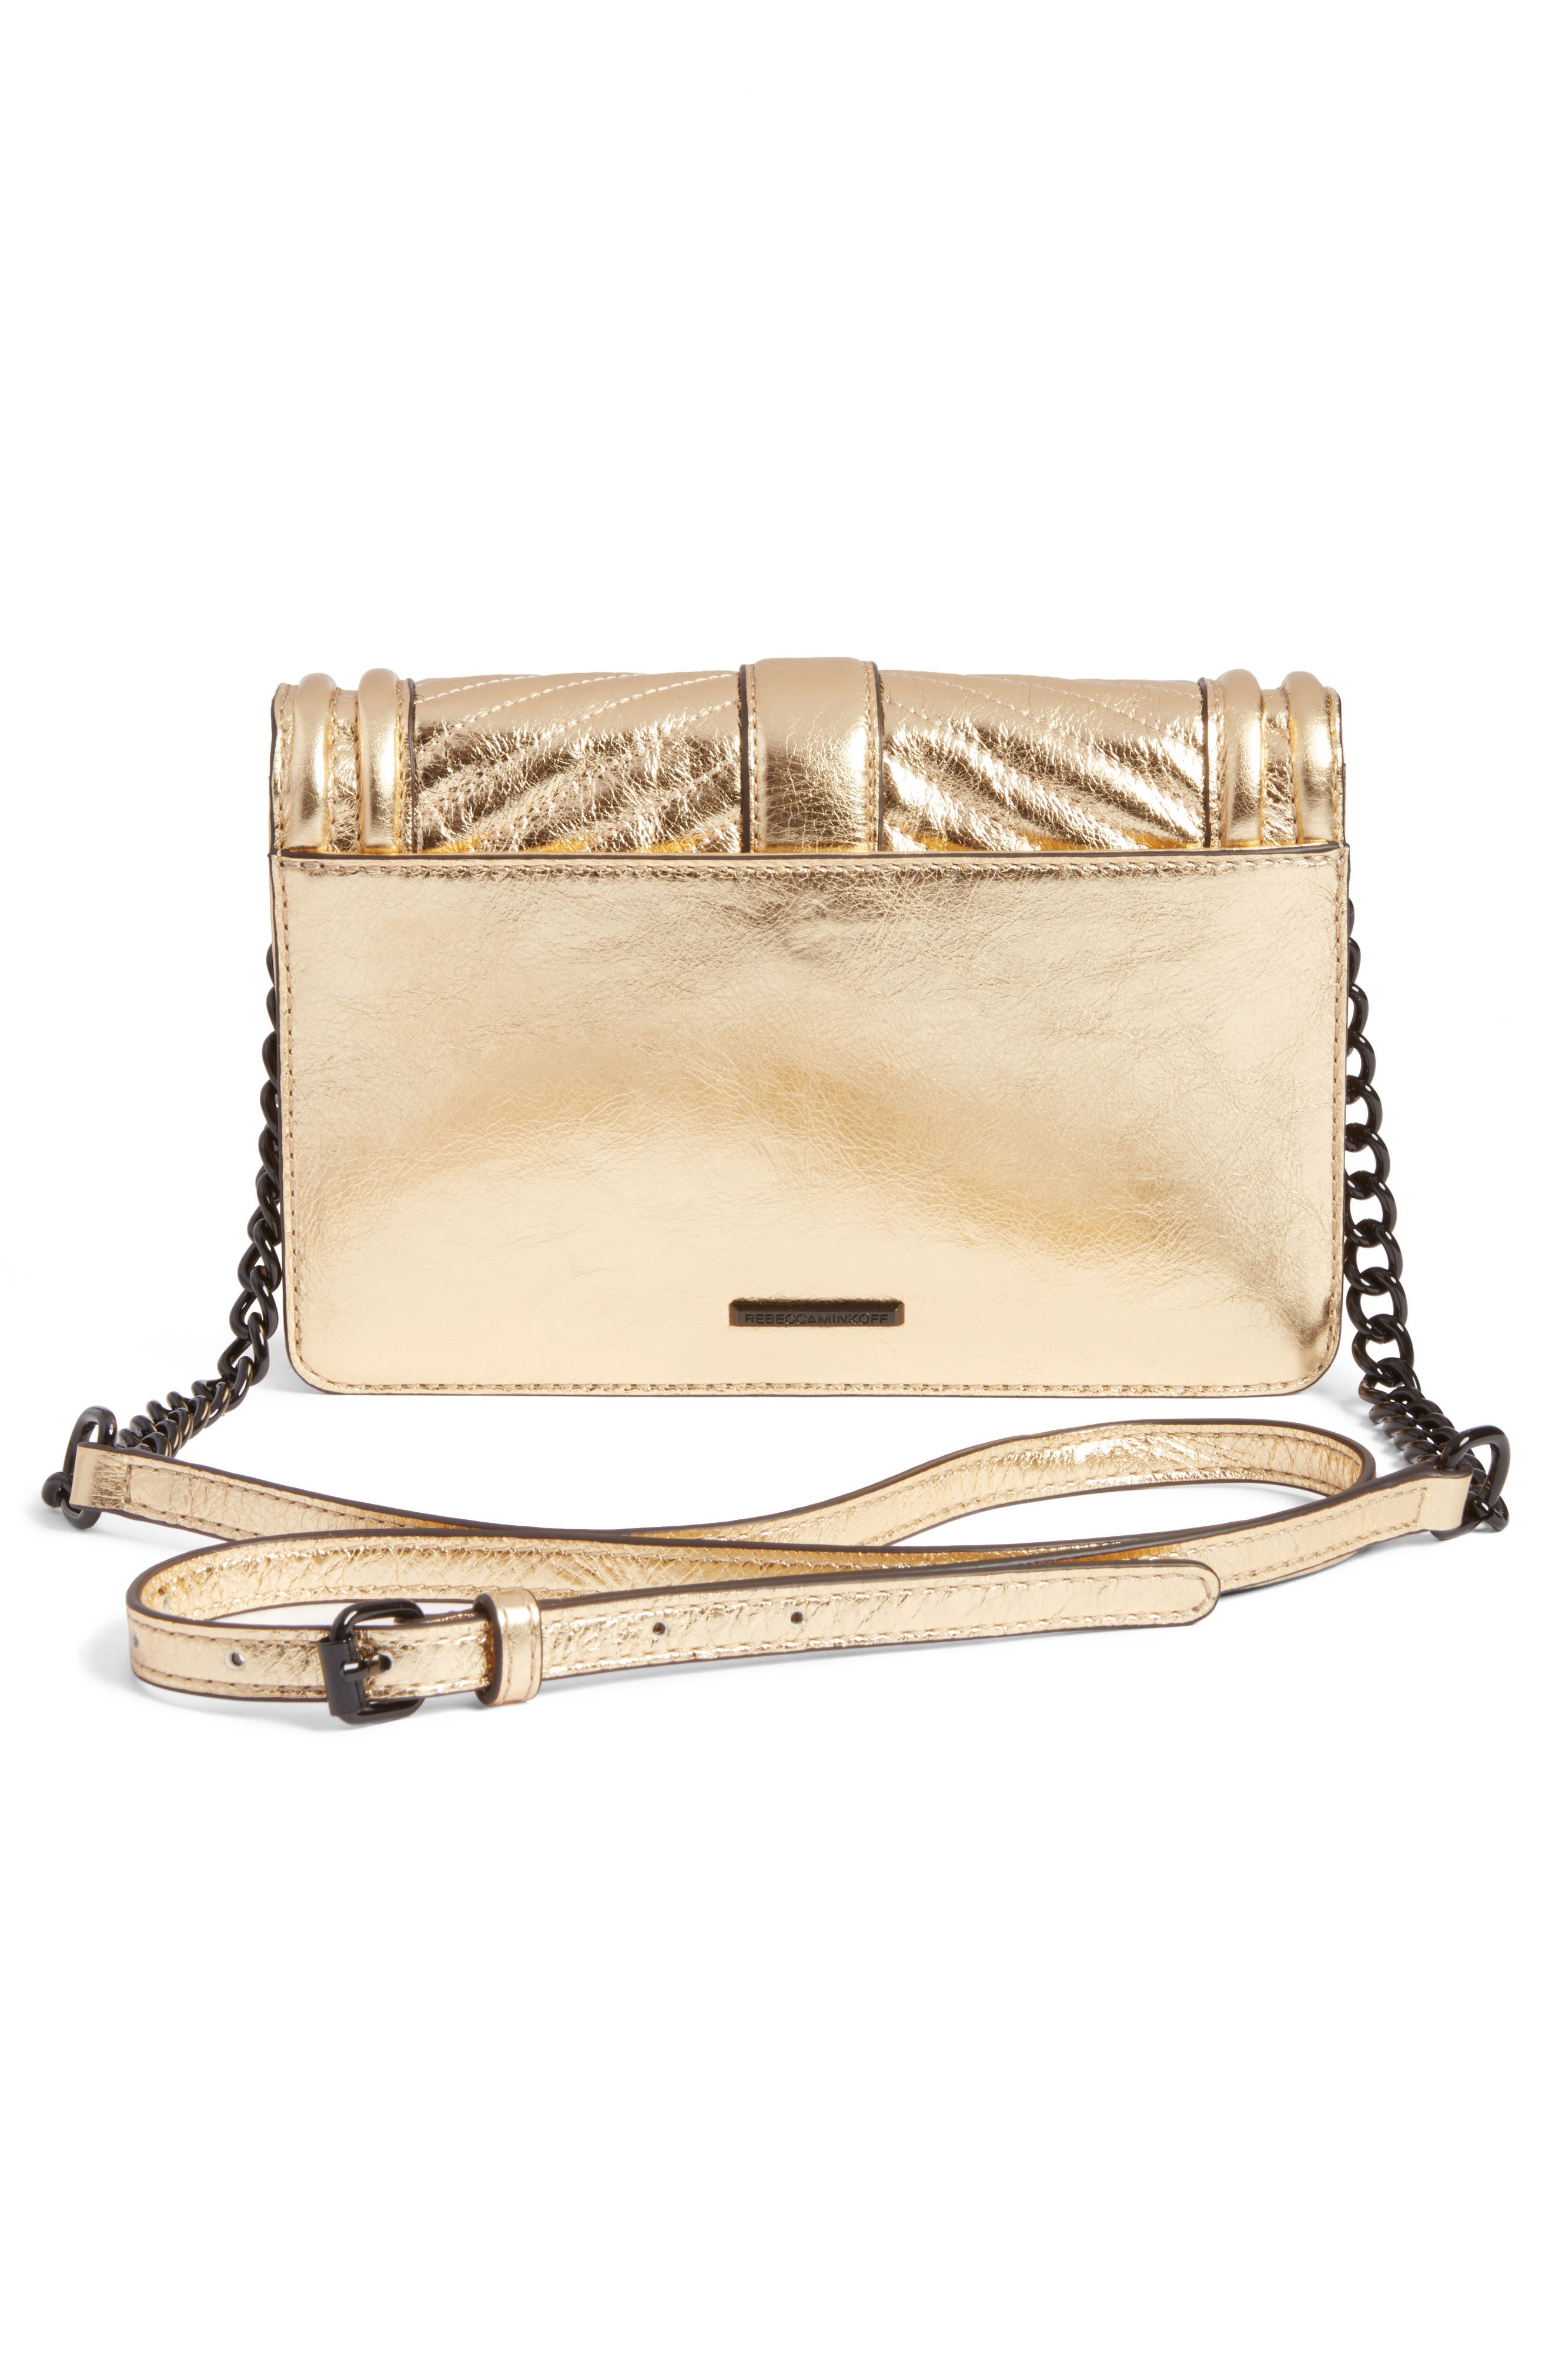 Alternate Image 3  - Rebecca Minkoff Small Love Metallic Leather Crossbody Bag (Nordstrom Exclusive)